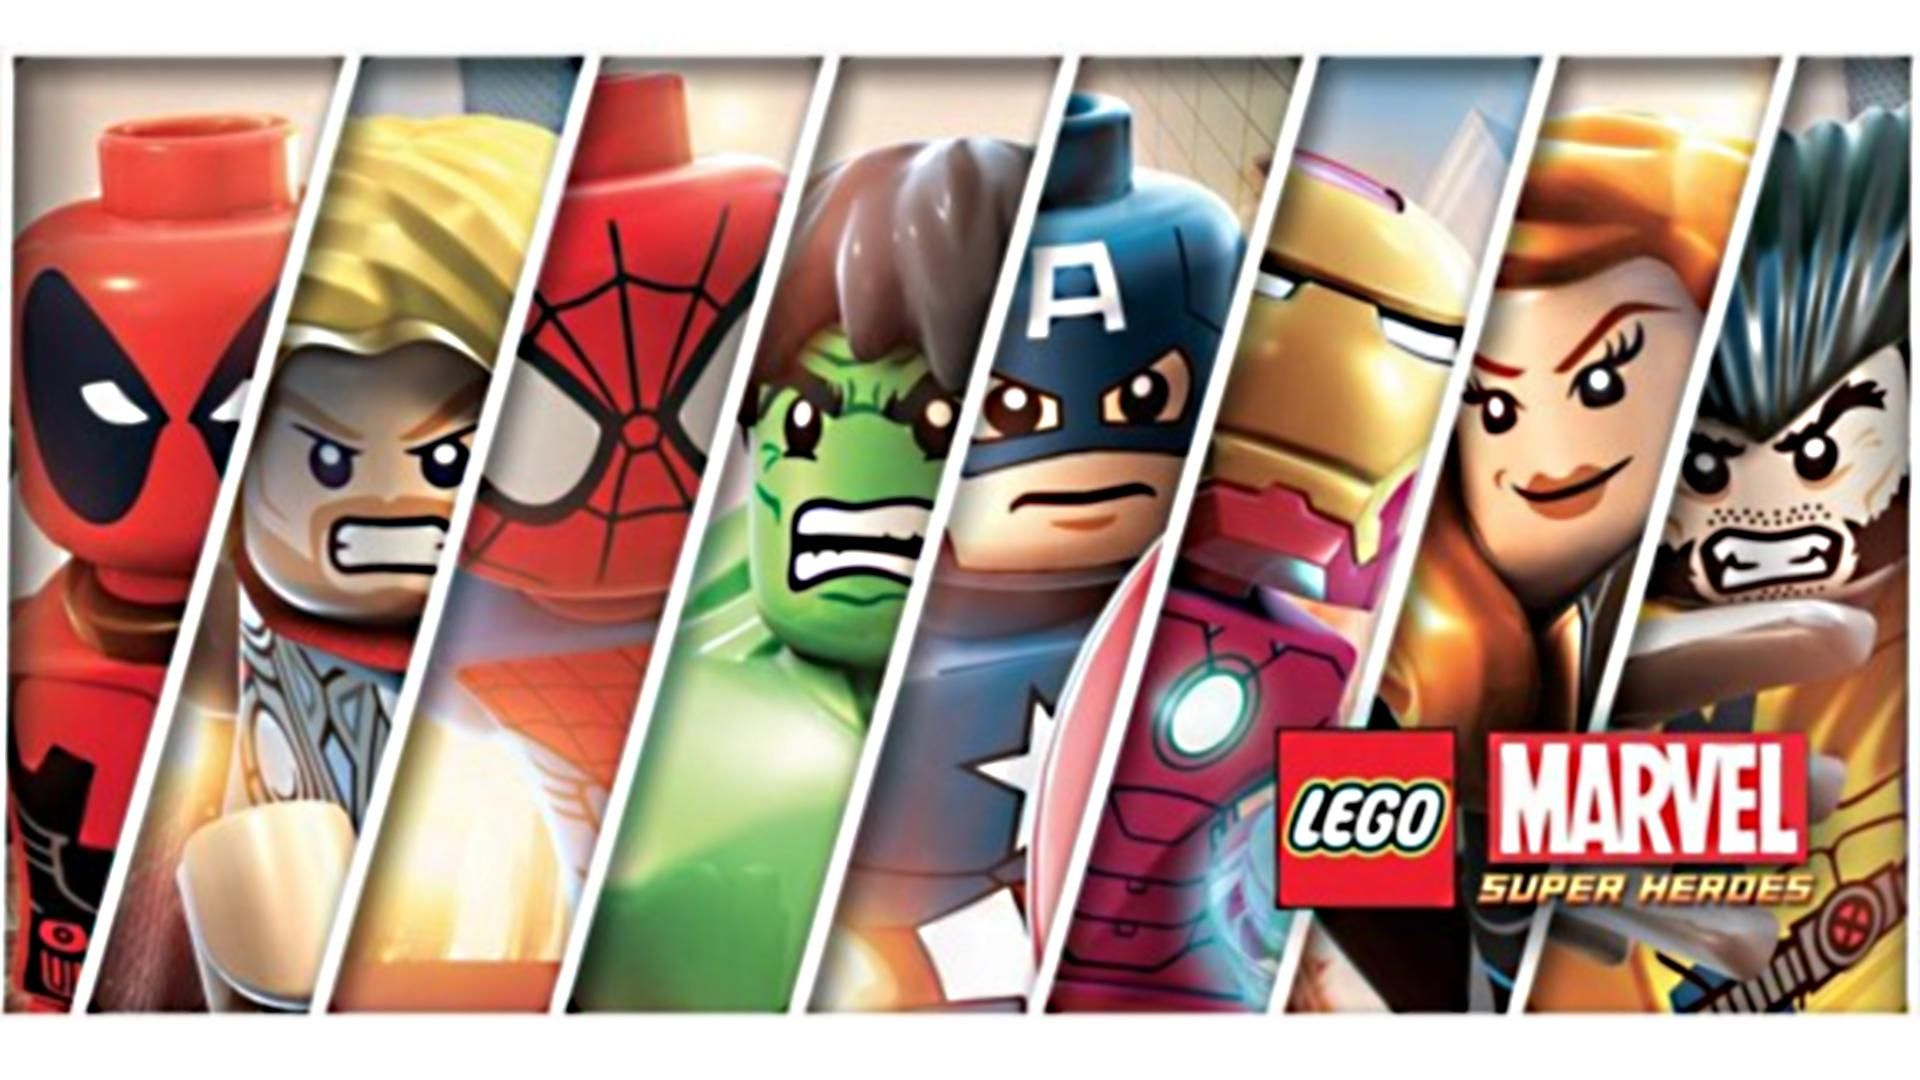 Lego superheroes wallpapers wallpaper 19201080 lego marvels lego superheroes wallpapers wallpaper 19201080 lego marvels avengers wallpapers 28 wallpapers voltagebd Choice Image